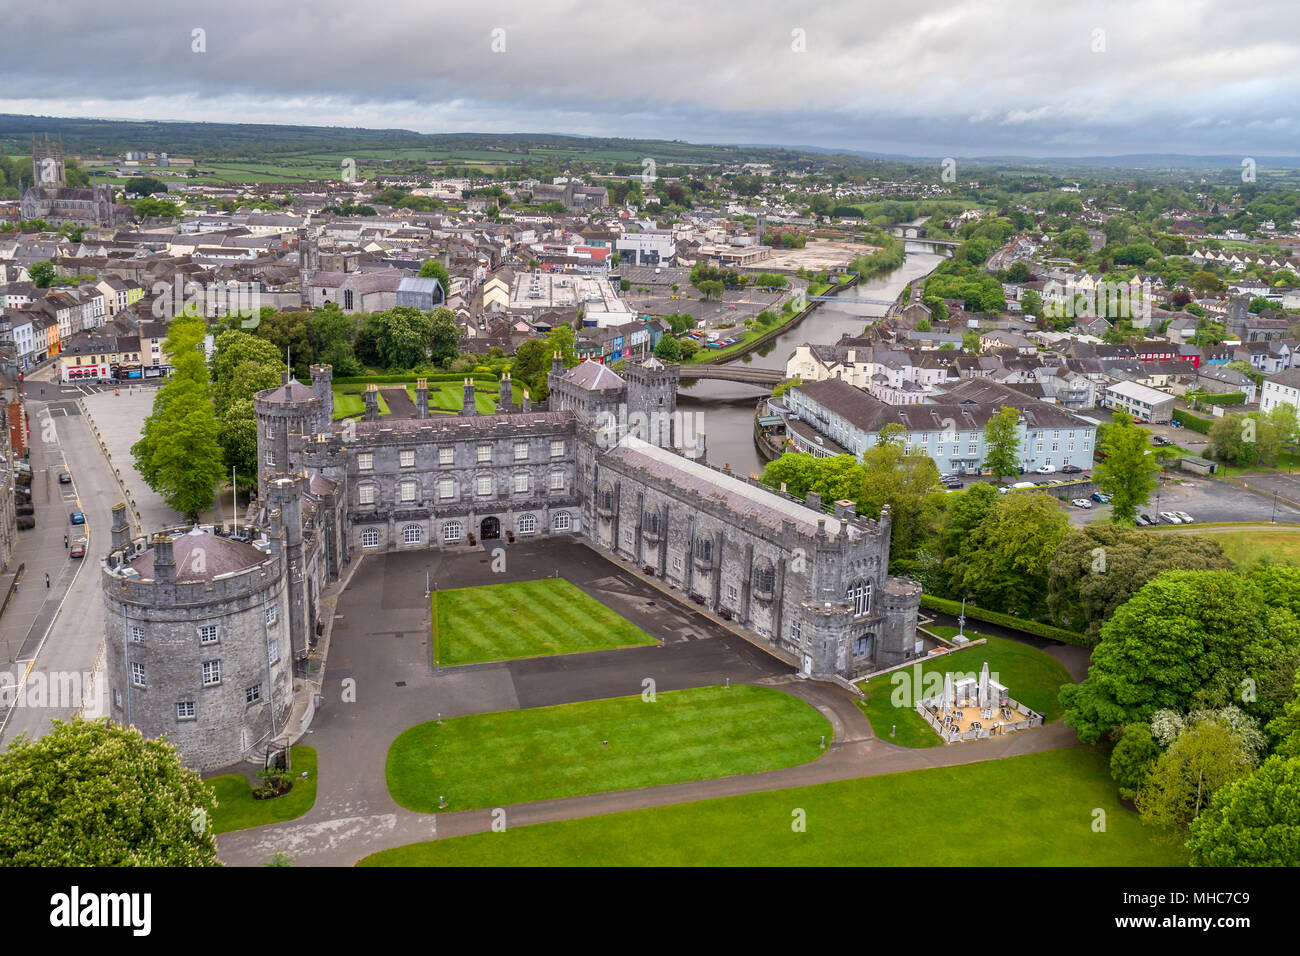 7b5901262e Aerial view of Kilkenny Castle and the river Nore running along side